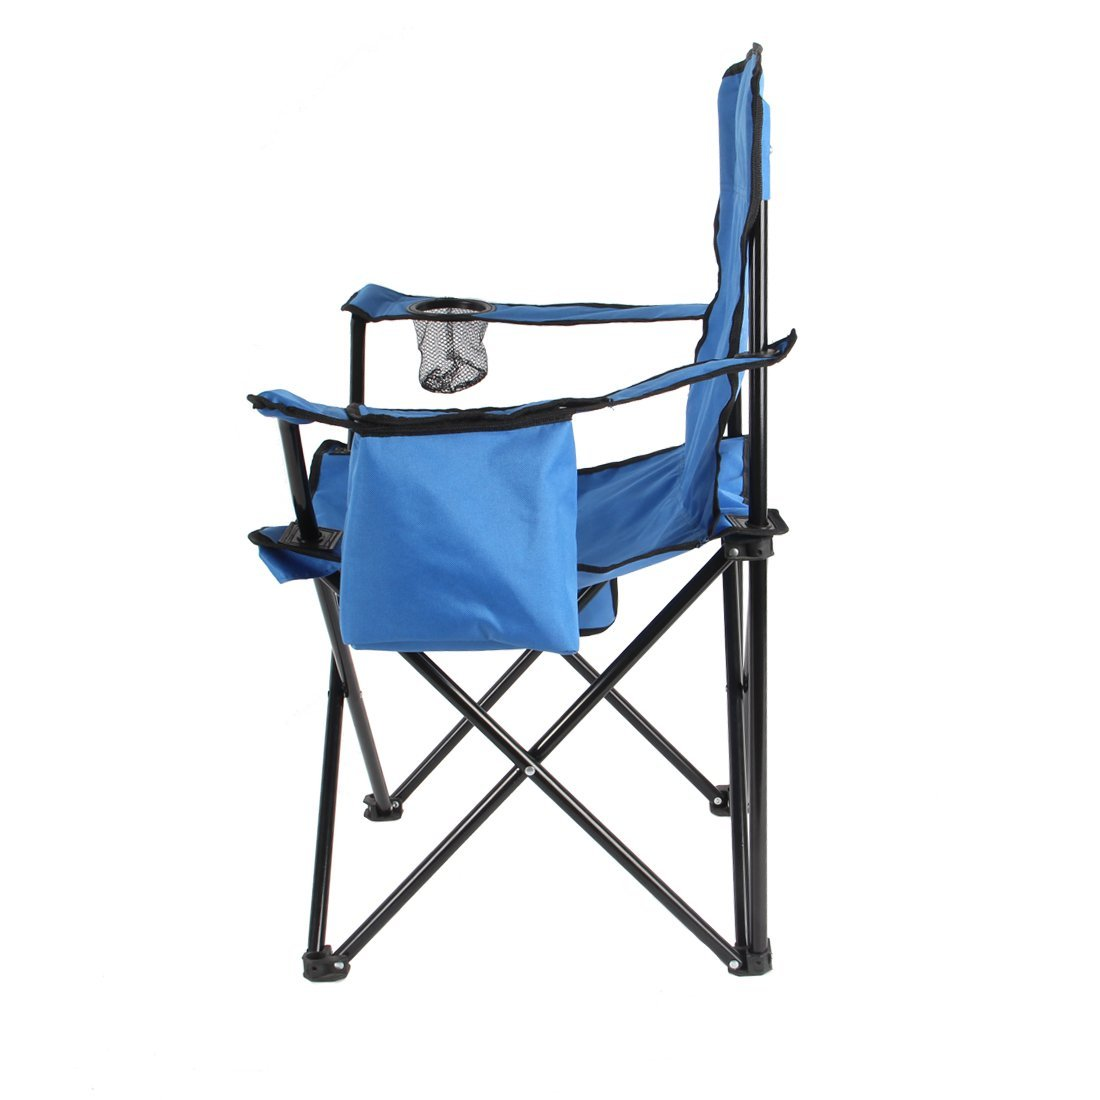 fishing camping folding beach chair with arm adjustable canopy ice bag litter caddie